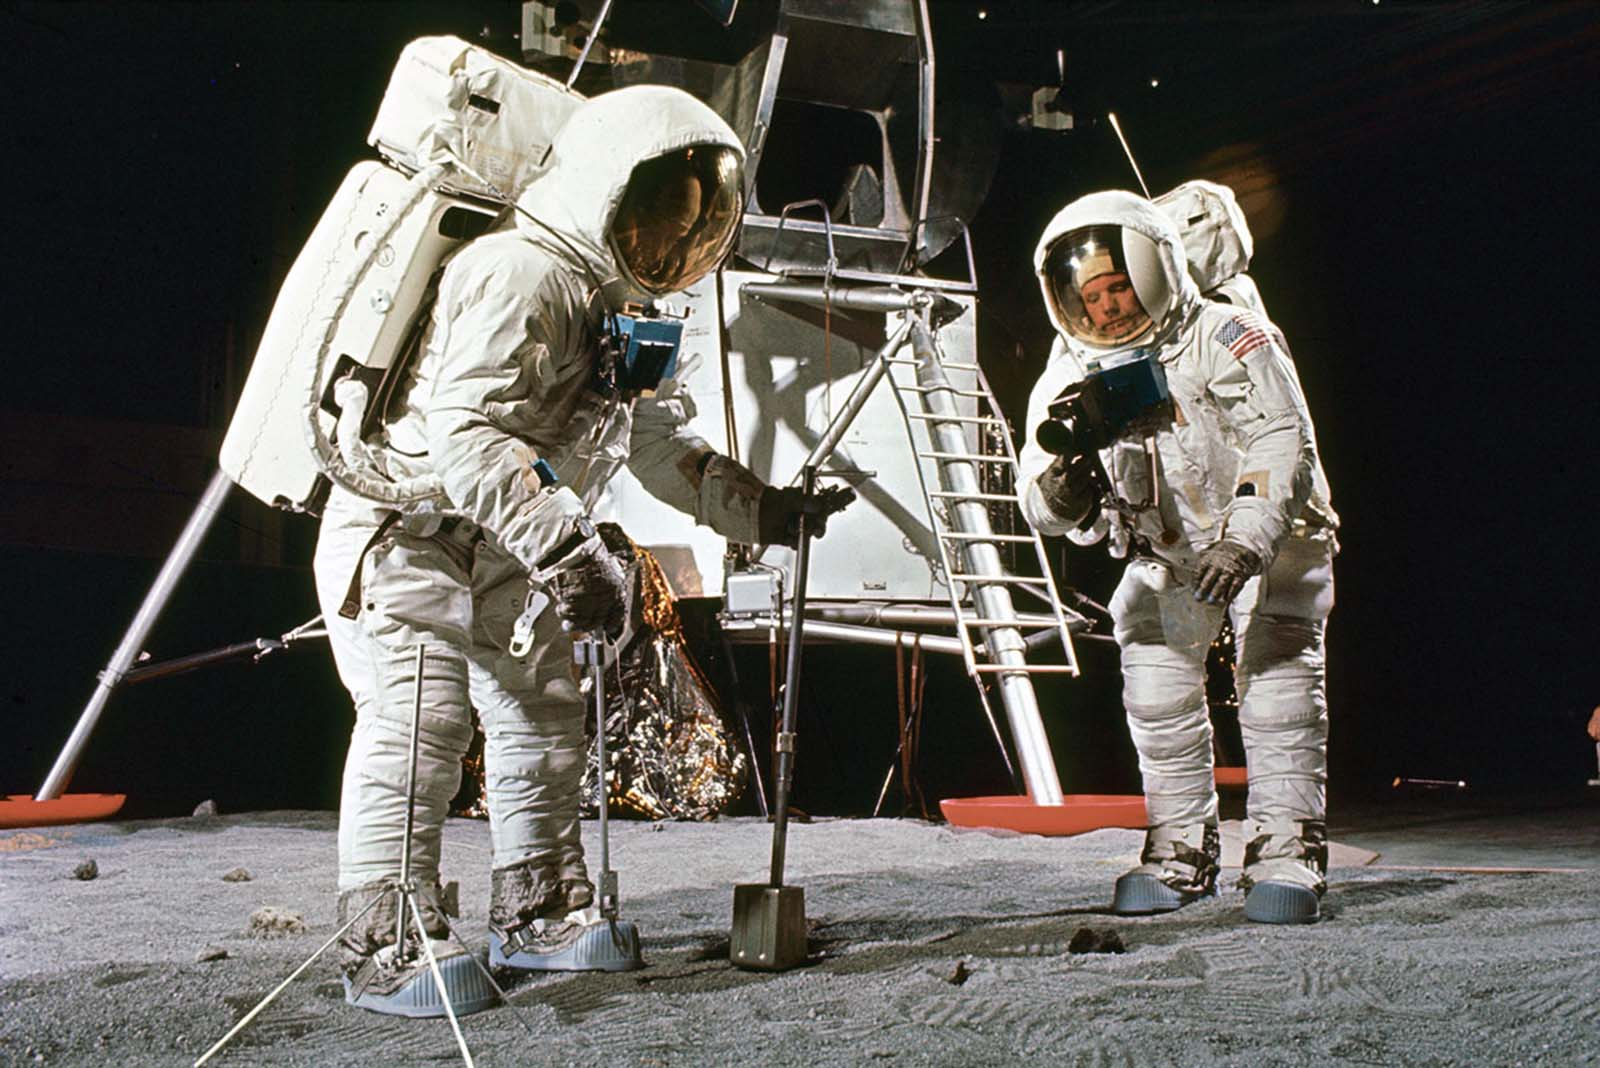 Buzz Aldrin (left) and Neil Armstrong train to make documented sample retrievals, suited up near a mock-up of the lunar lander in the spring of 1969.